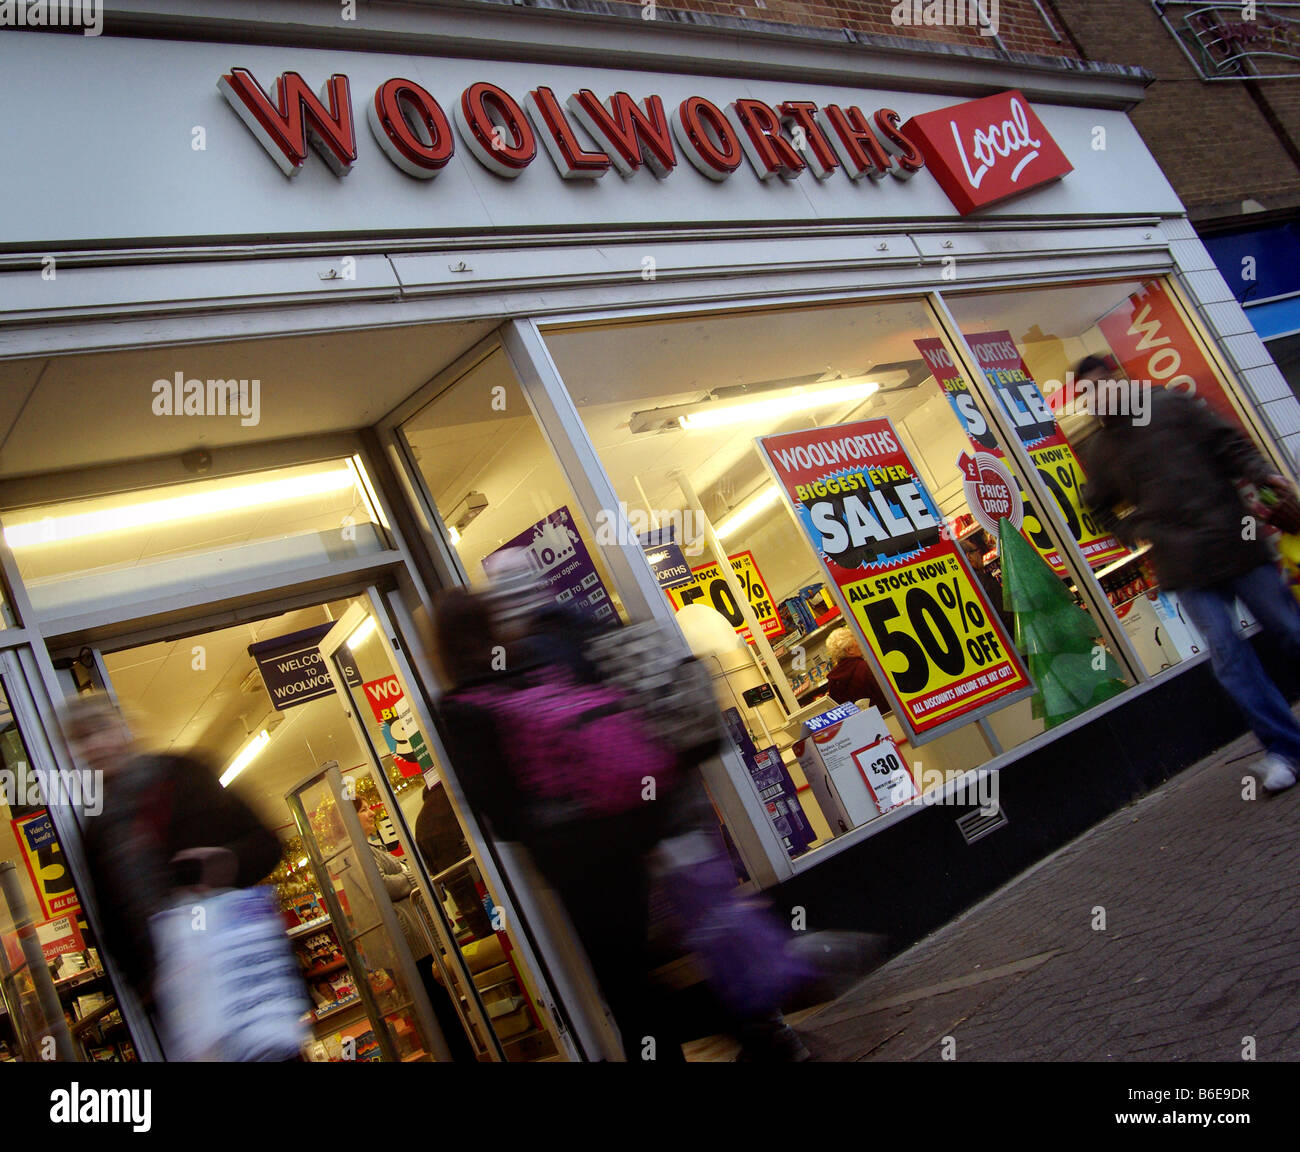 Woolworths, Woolies, High St, Retail, Closure,Dec 2008 Stock Photo